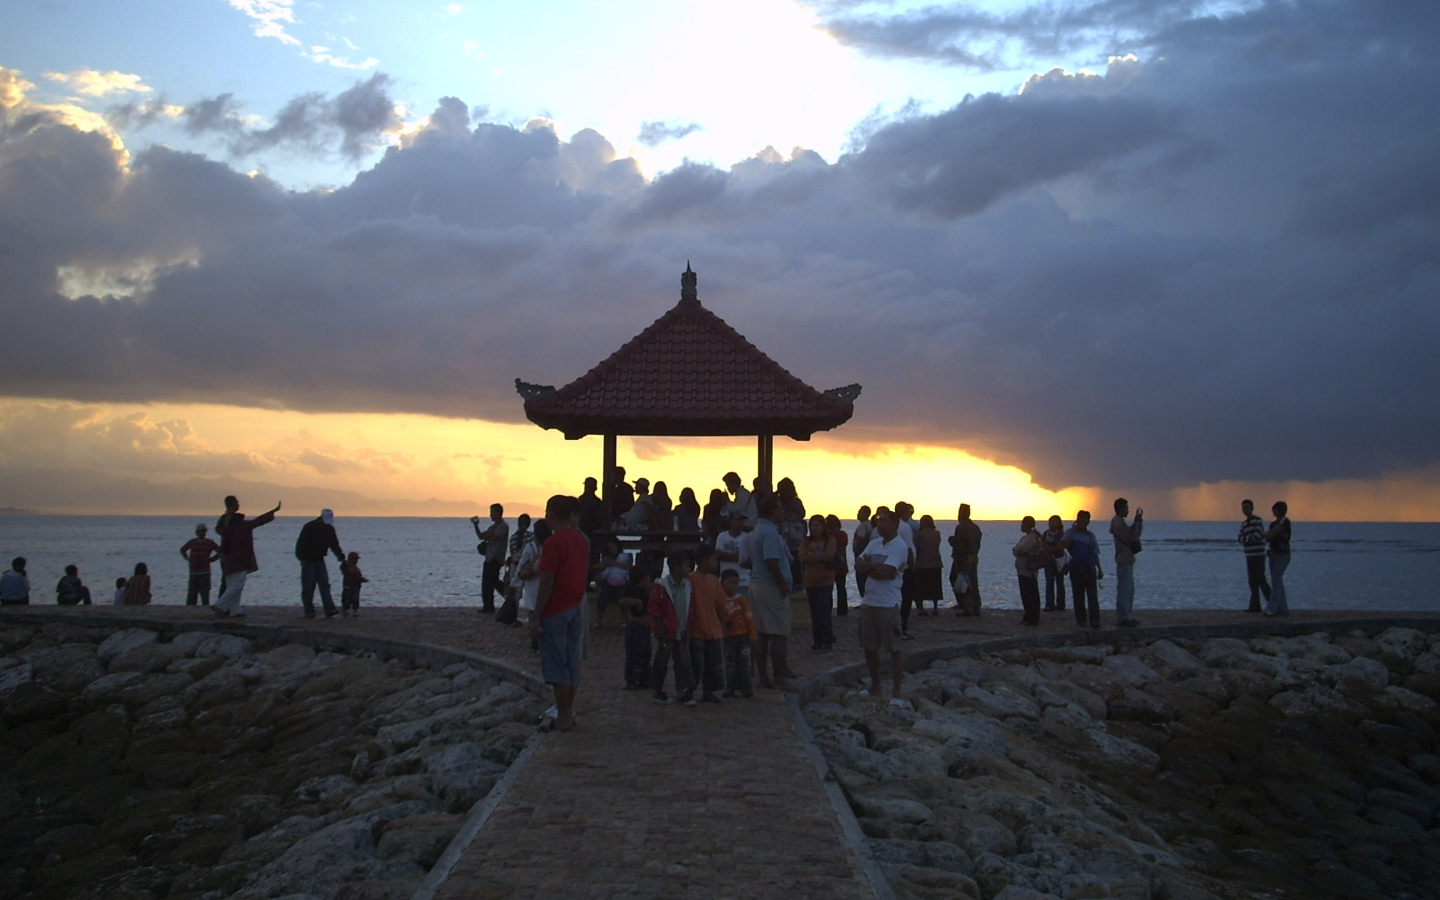 Blogbook Bali Travel 28 8 2013 Visa Hotel And Accommodation Voucher Trip Menjangan Barat